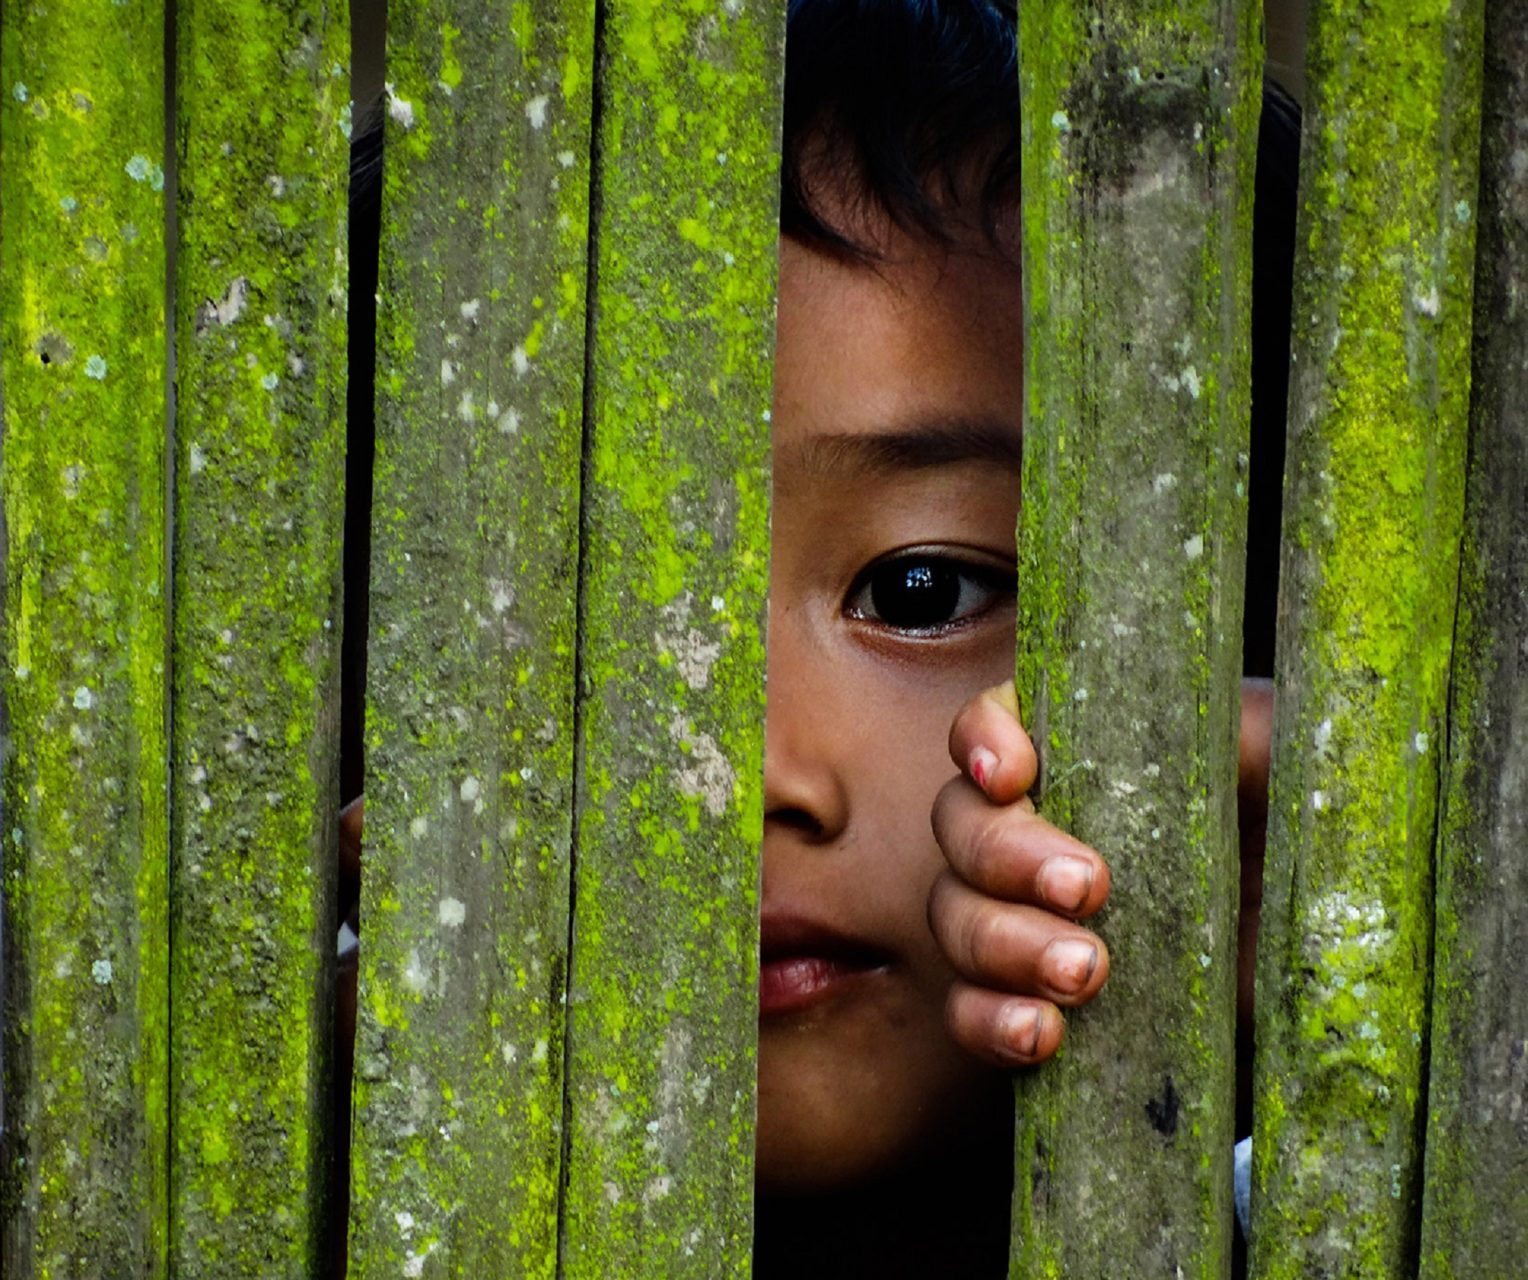 small child hiding behind green fence, with one eye peeking through